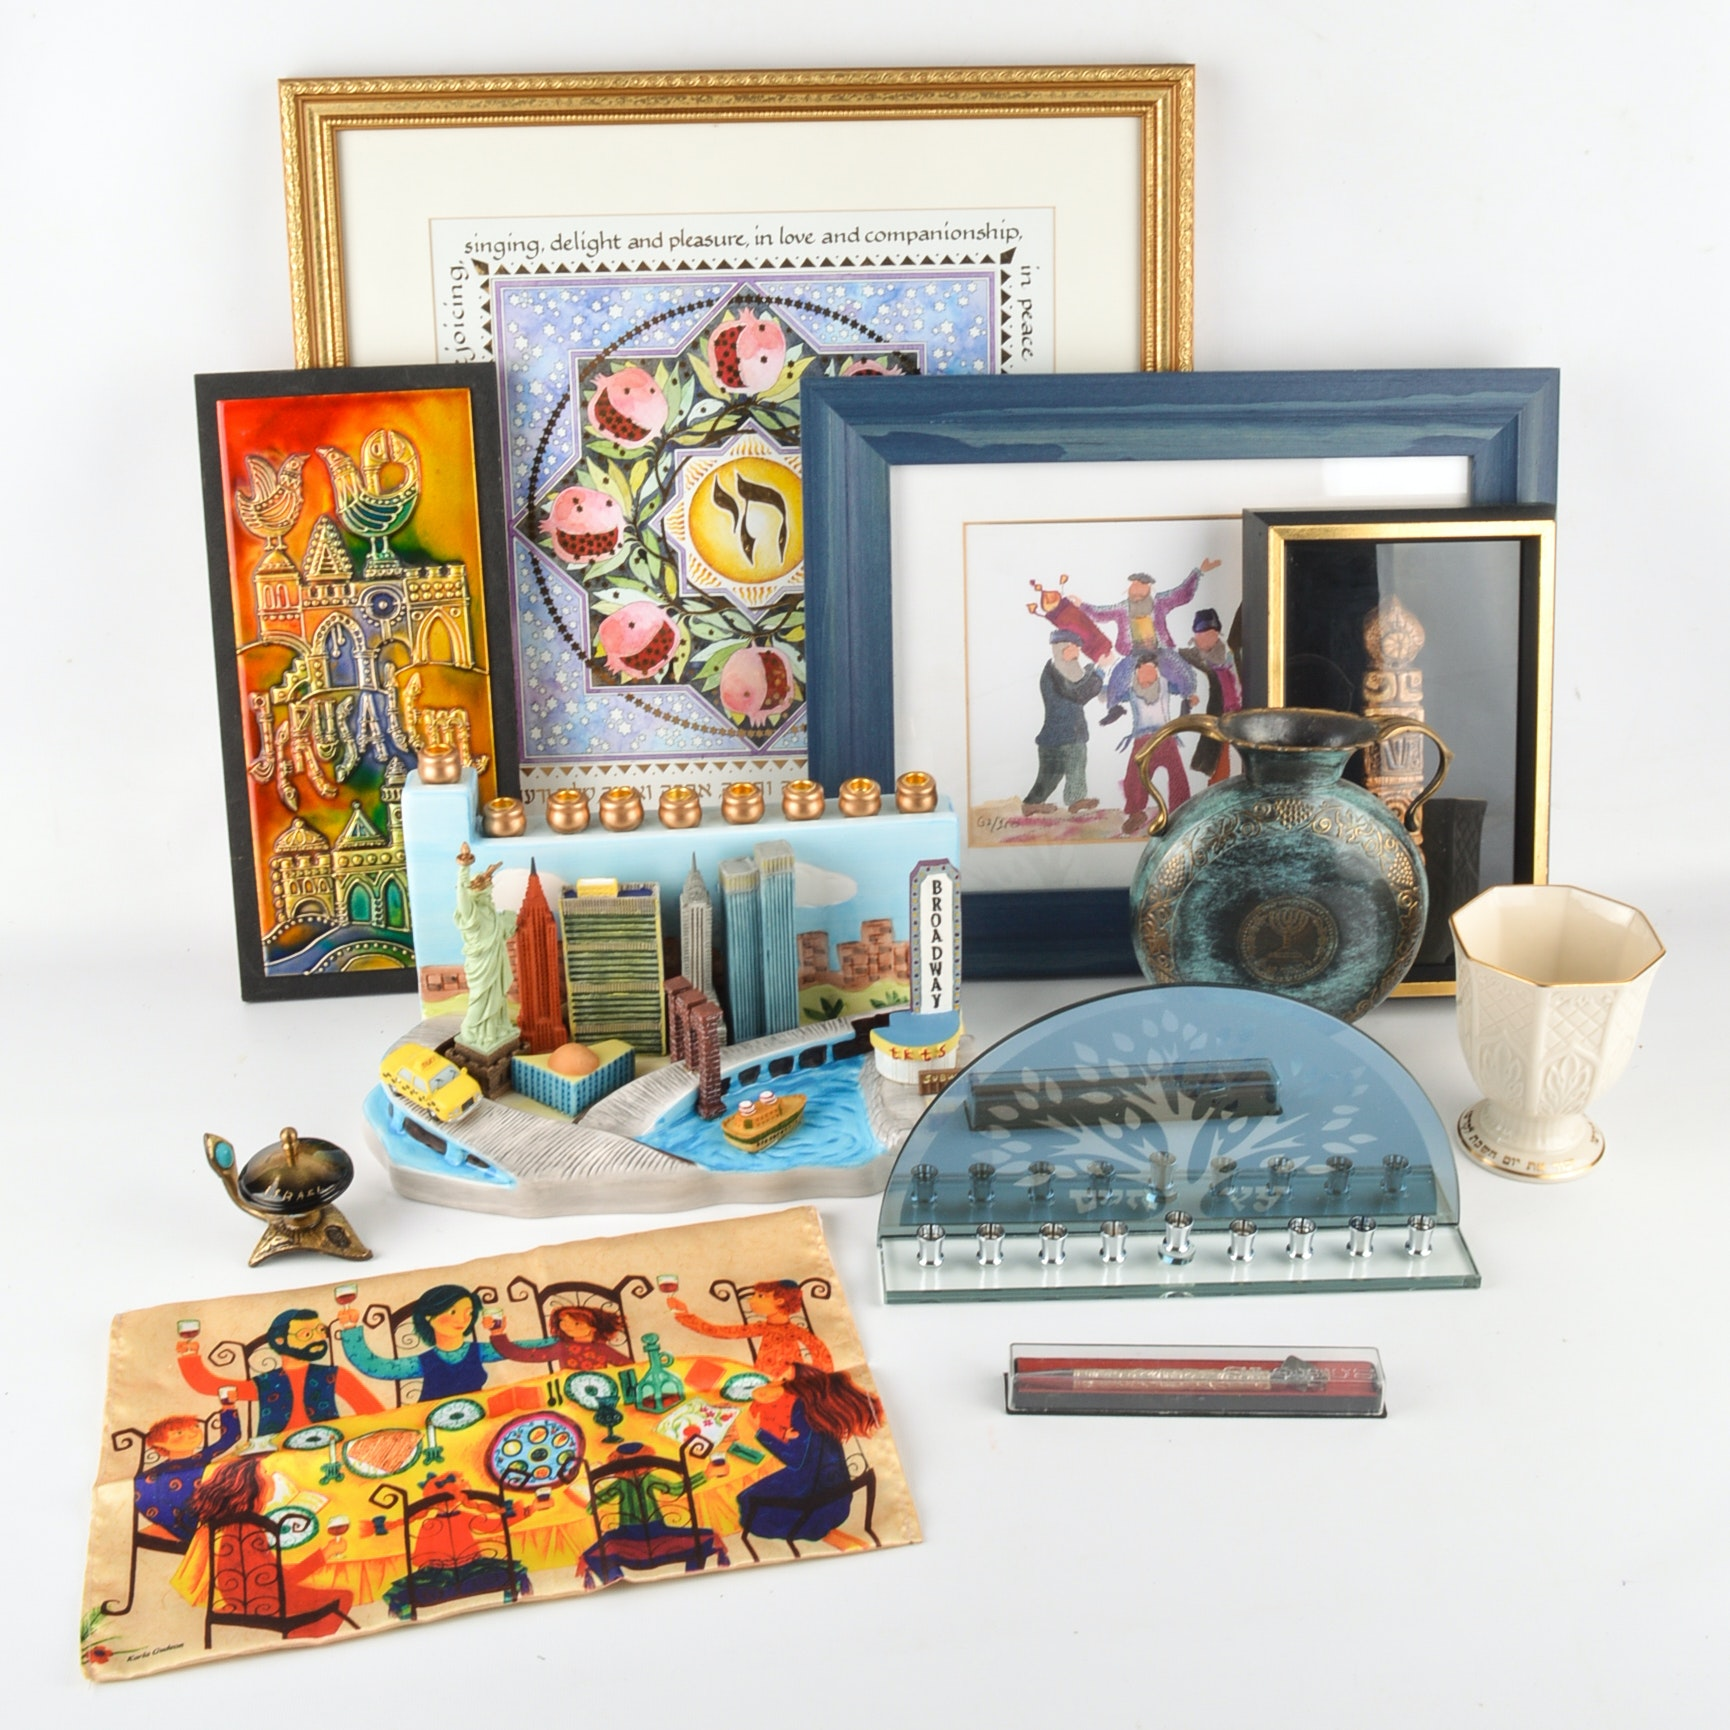 Collection of Judaica Including Decor, Menorahs and More